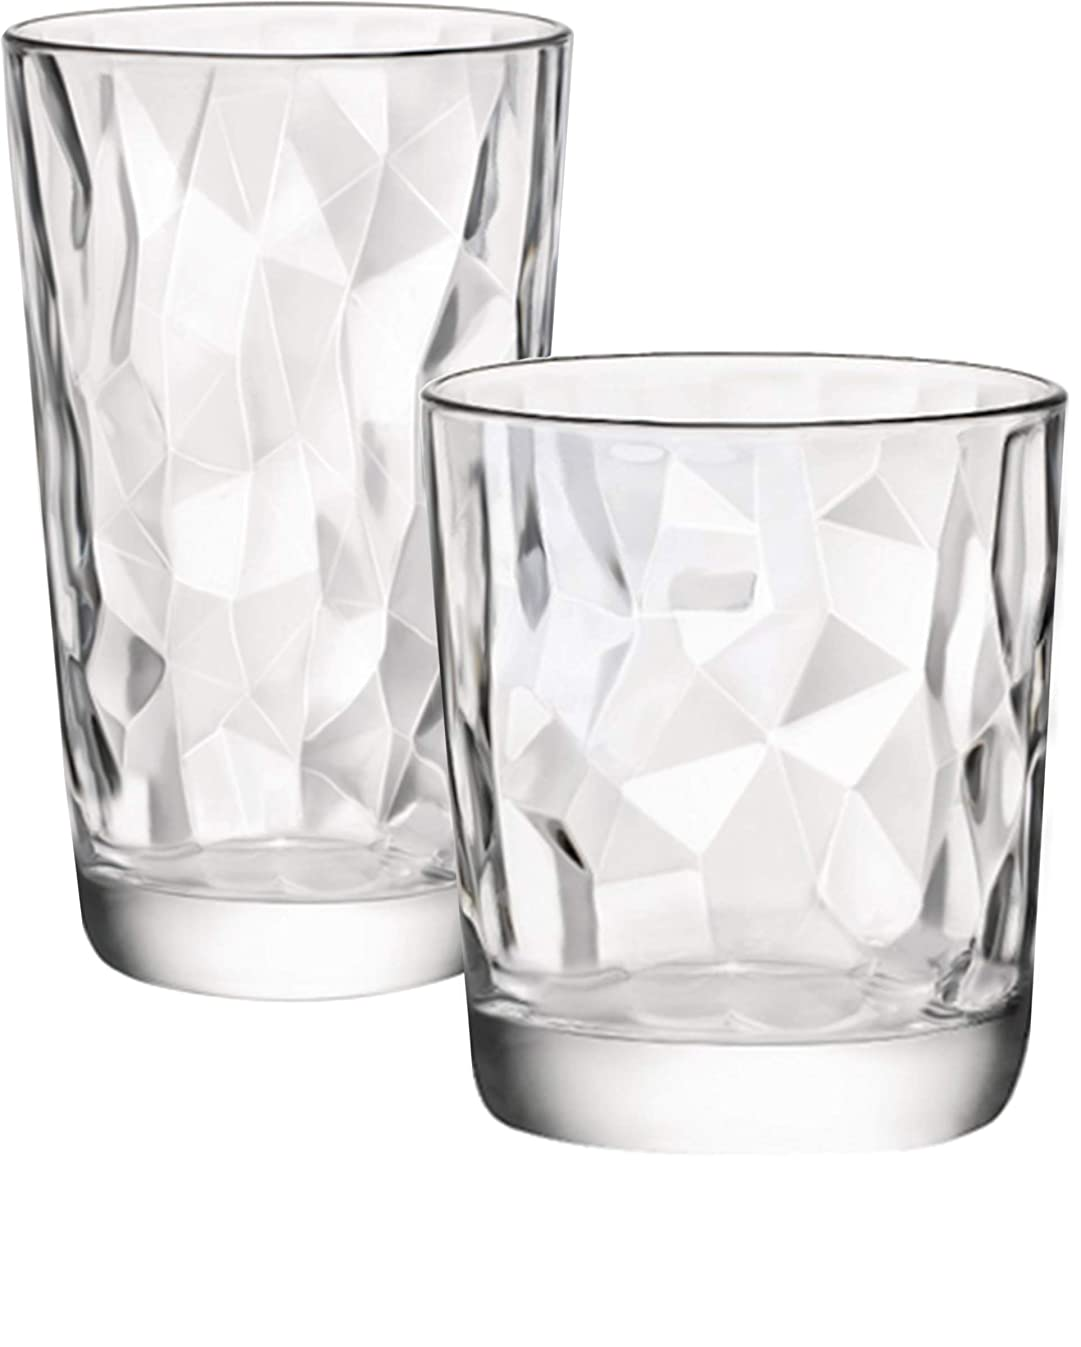 Circleware 40158 Cabrini Set of 12 Drinking Glasses & Whiskey Cups Glassware for Water, Beer, Juice, Ice Tea Beverage 6-15.7 oz & 6-12.5 oz 12pc